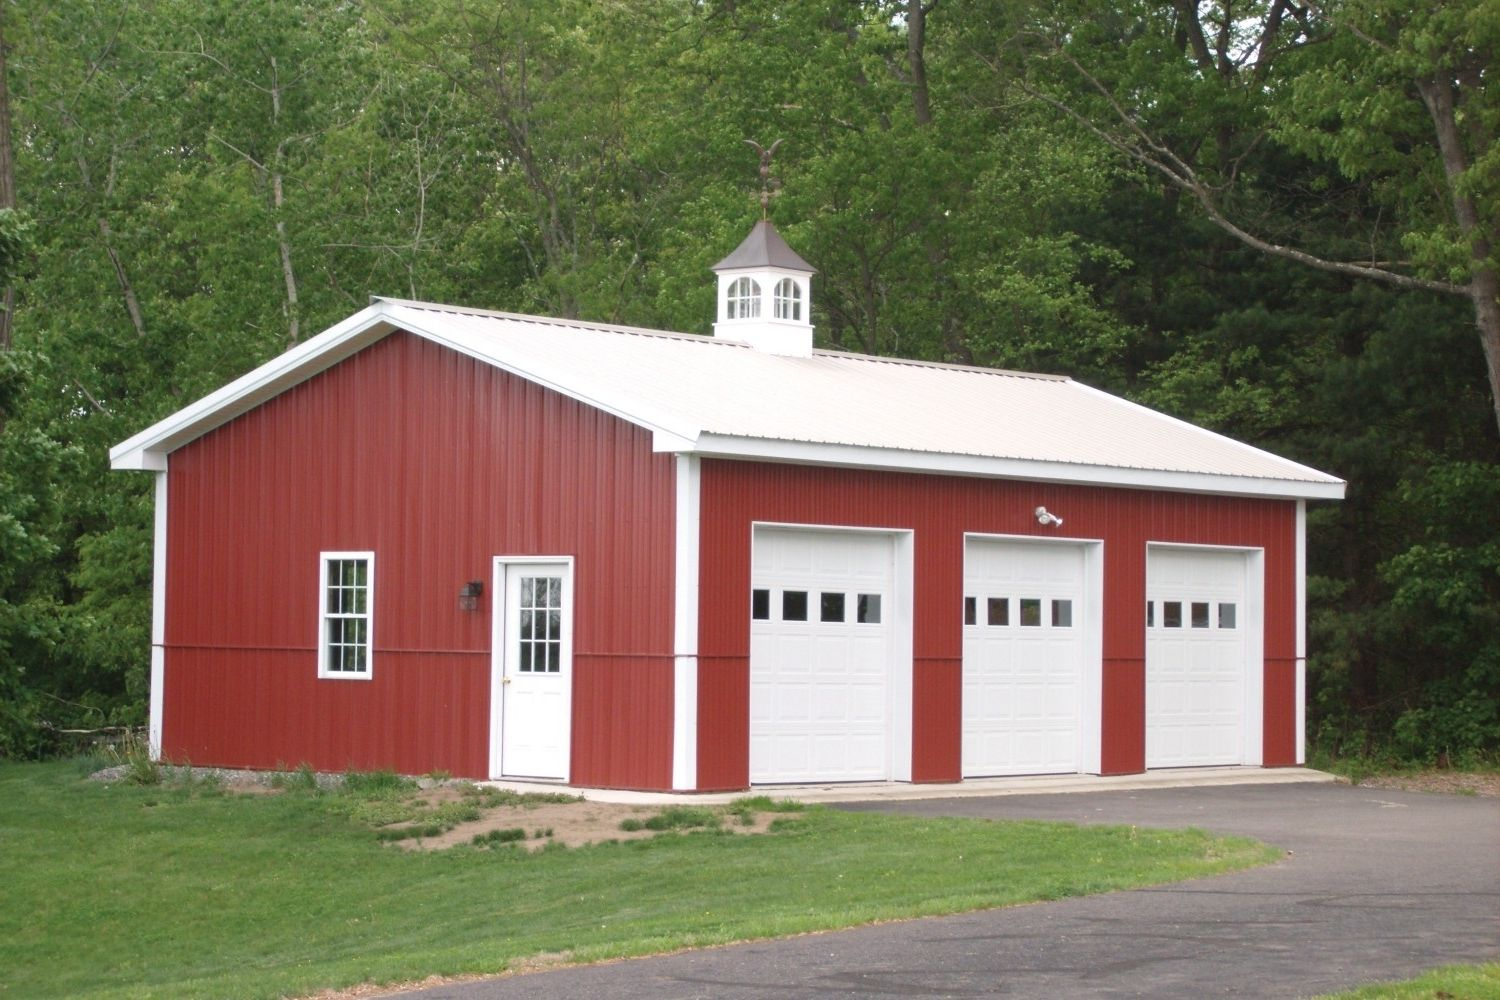 pole buildings horse barns storefronts riding arenas the barn pole